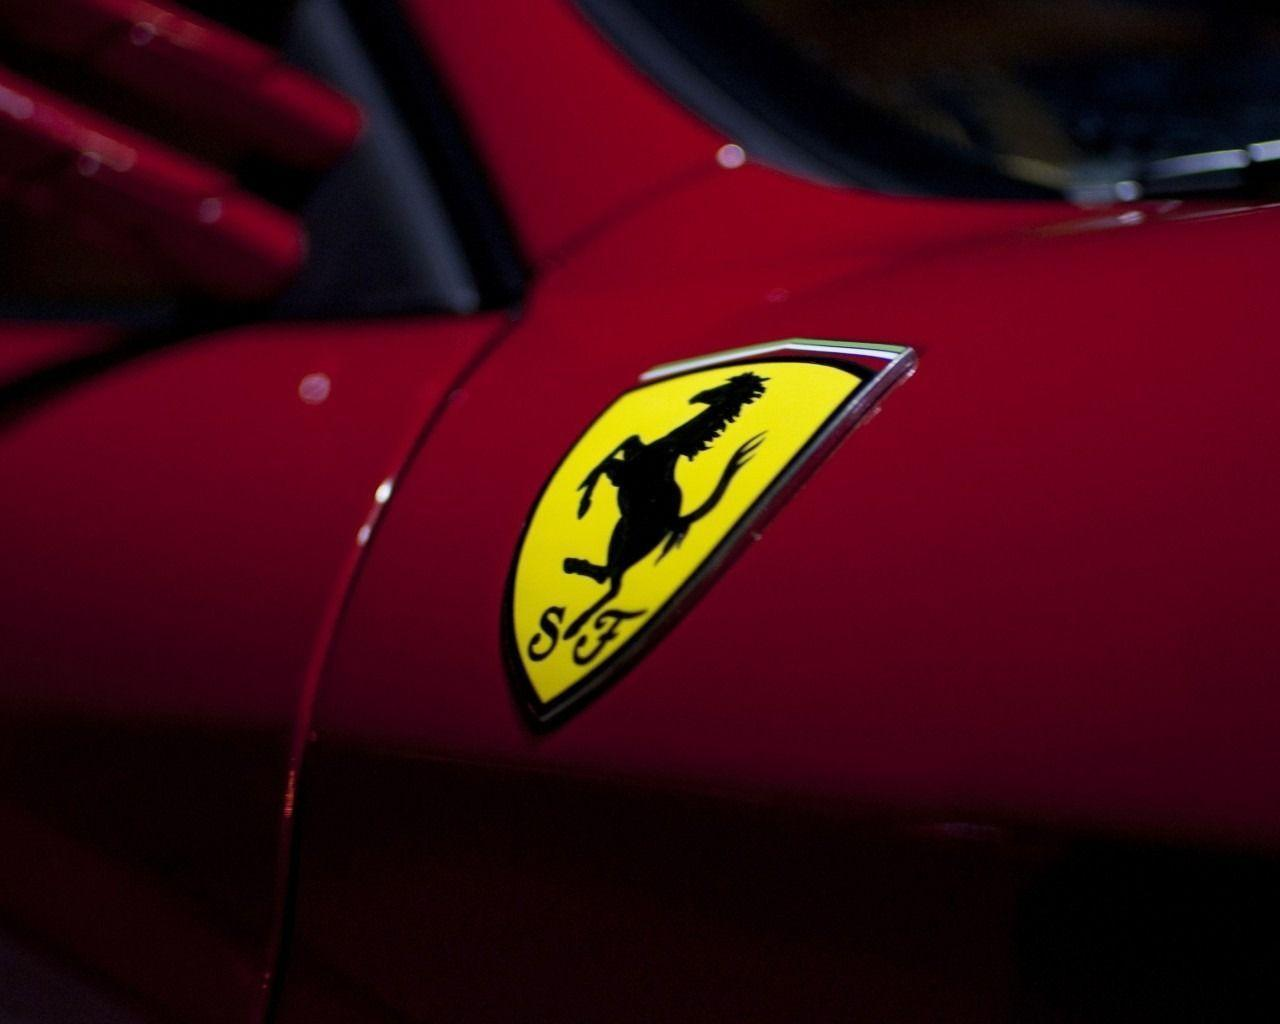 Ferrari Logo Wallpaper | Wallpaper HD | HD Desktop Backgrounds ...